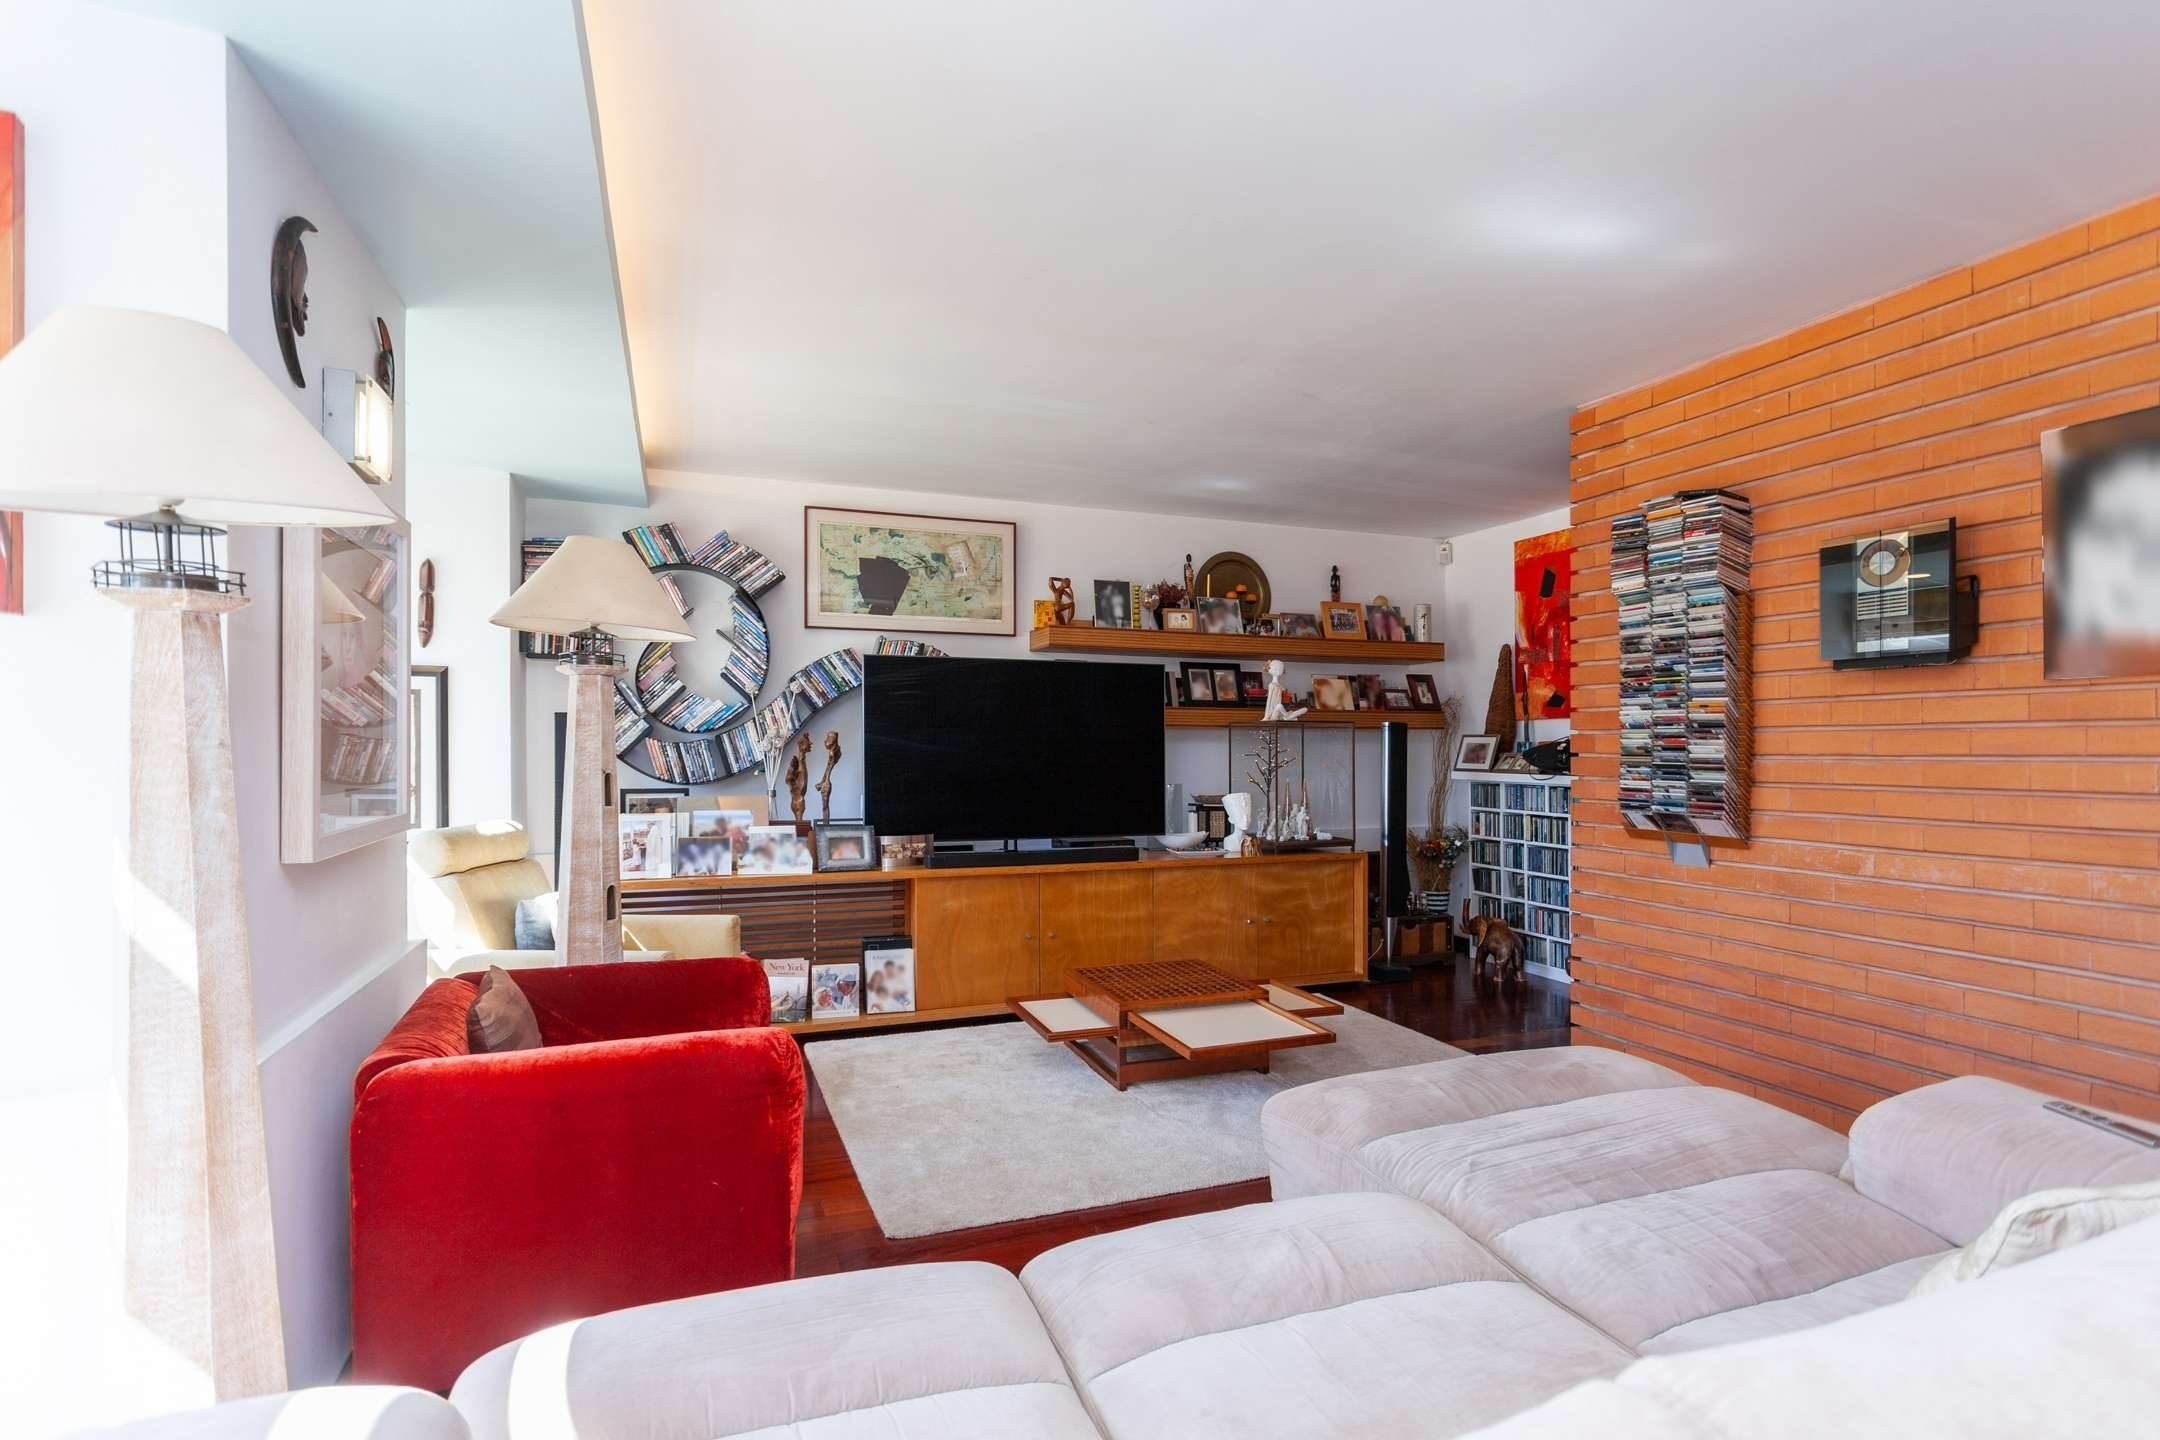 3. διαμερίσματα για την Πώληση στο Fantastic 4 bedroom apartment, located in Lapa, one of the most prestigious neighbourhoods of Lisbon. With an around 174... Λισαβόνα, Πορτογαλια